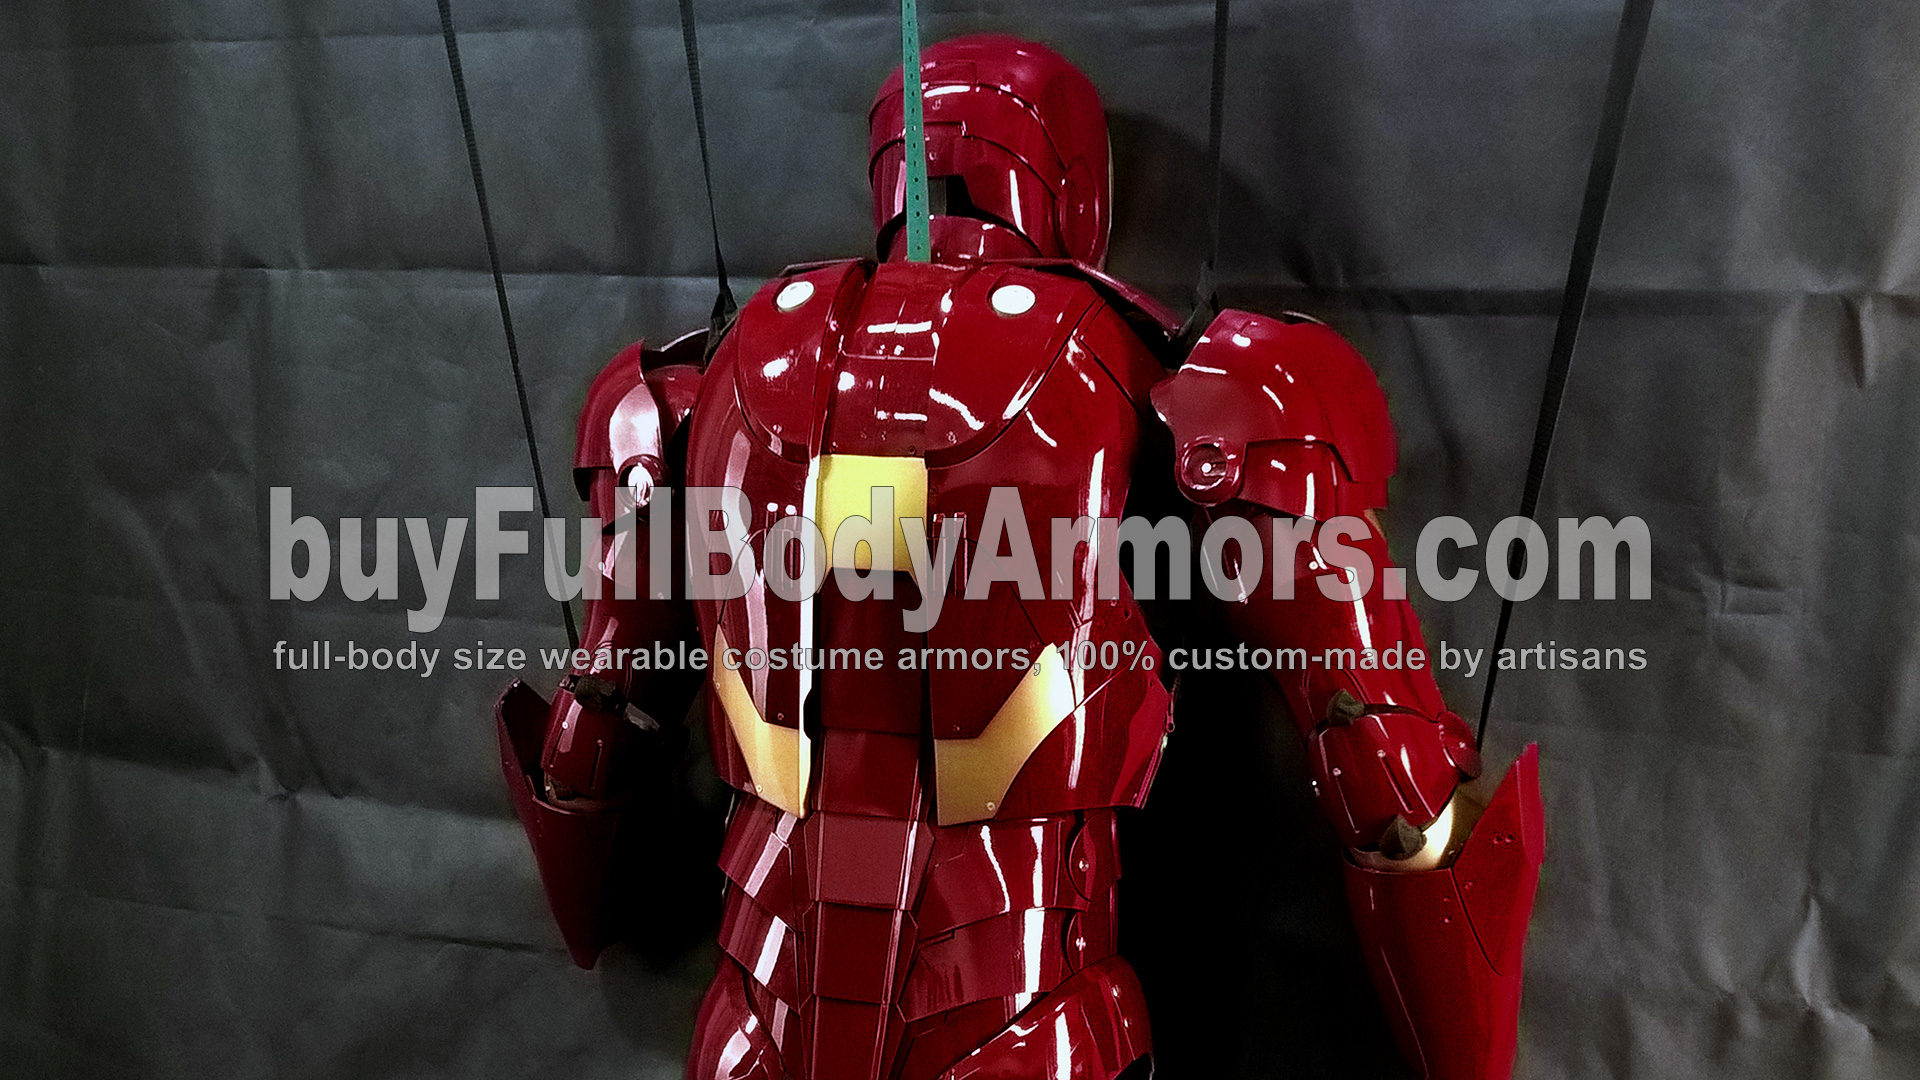 The Wearable Iron Man Suit Mark 3 III Armor Costume - Top Half Prototype 7